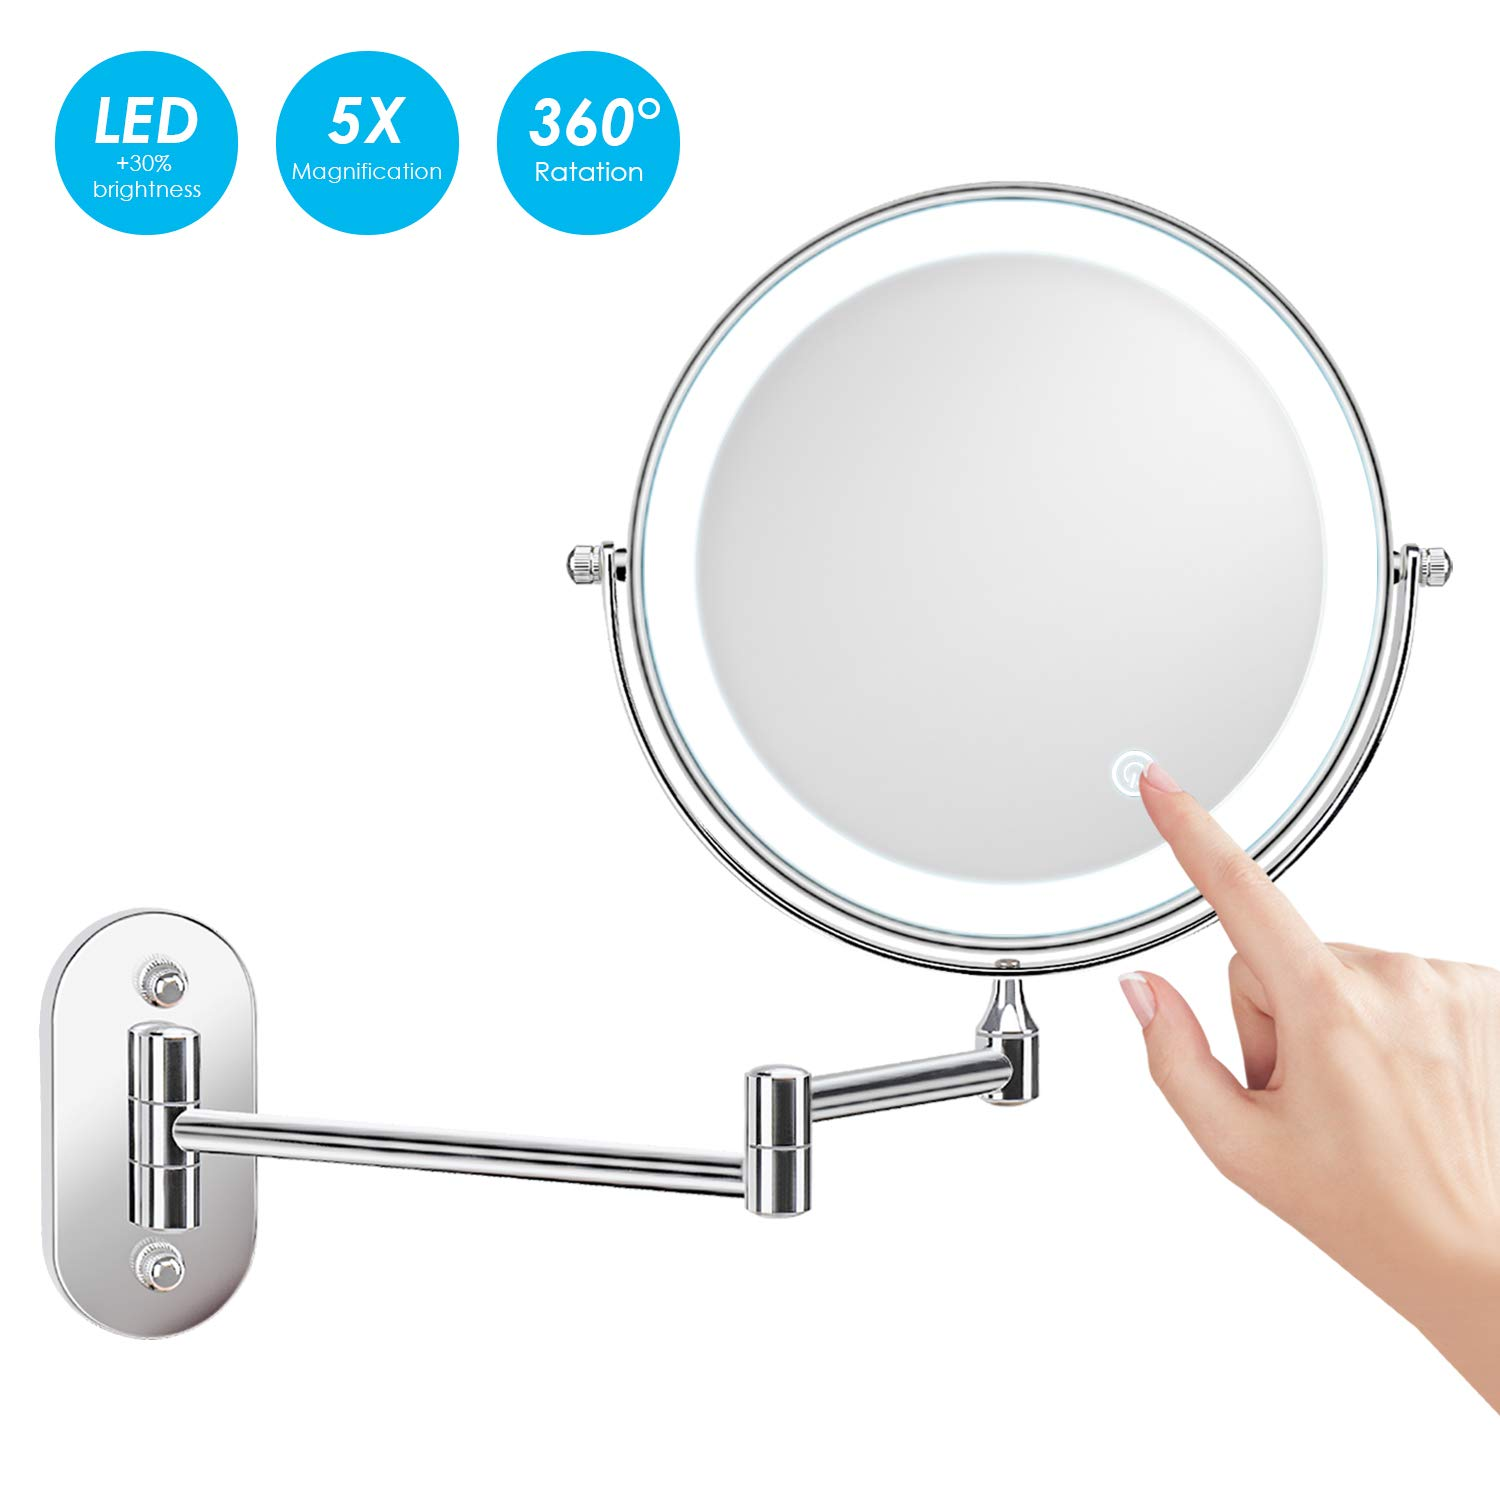 Top wall mounted makeup mirror on Amazon that is budget friendly.